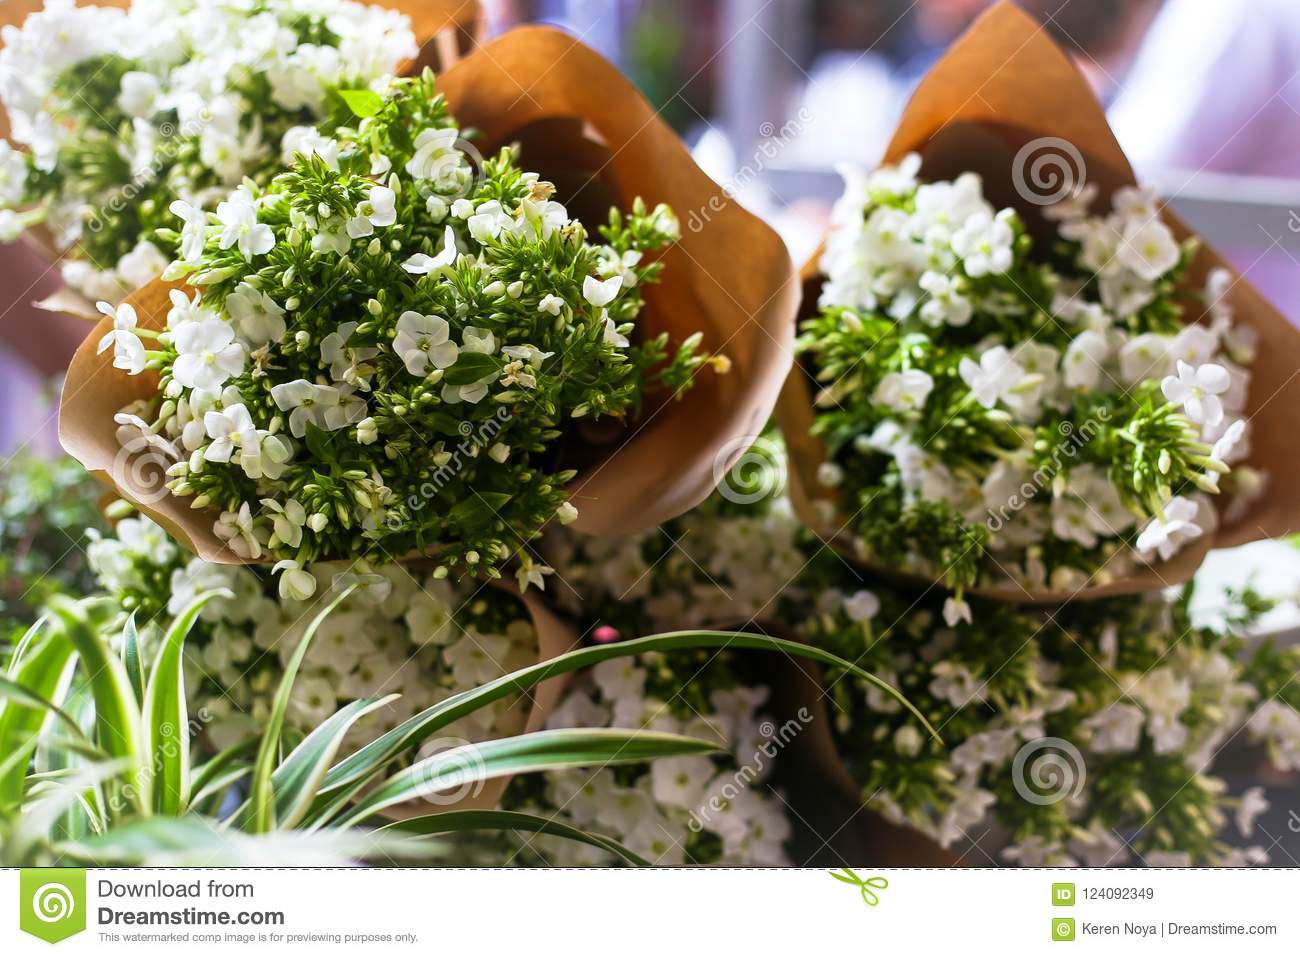 Beautiful bouquets consisting of tiny white flowers stock image download beautiful bouquets consisting of tiny white flowers stock image image of background flowers mightylinksfo